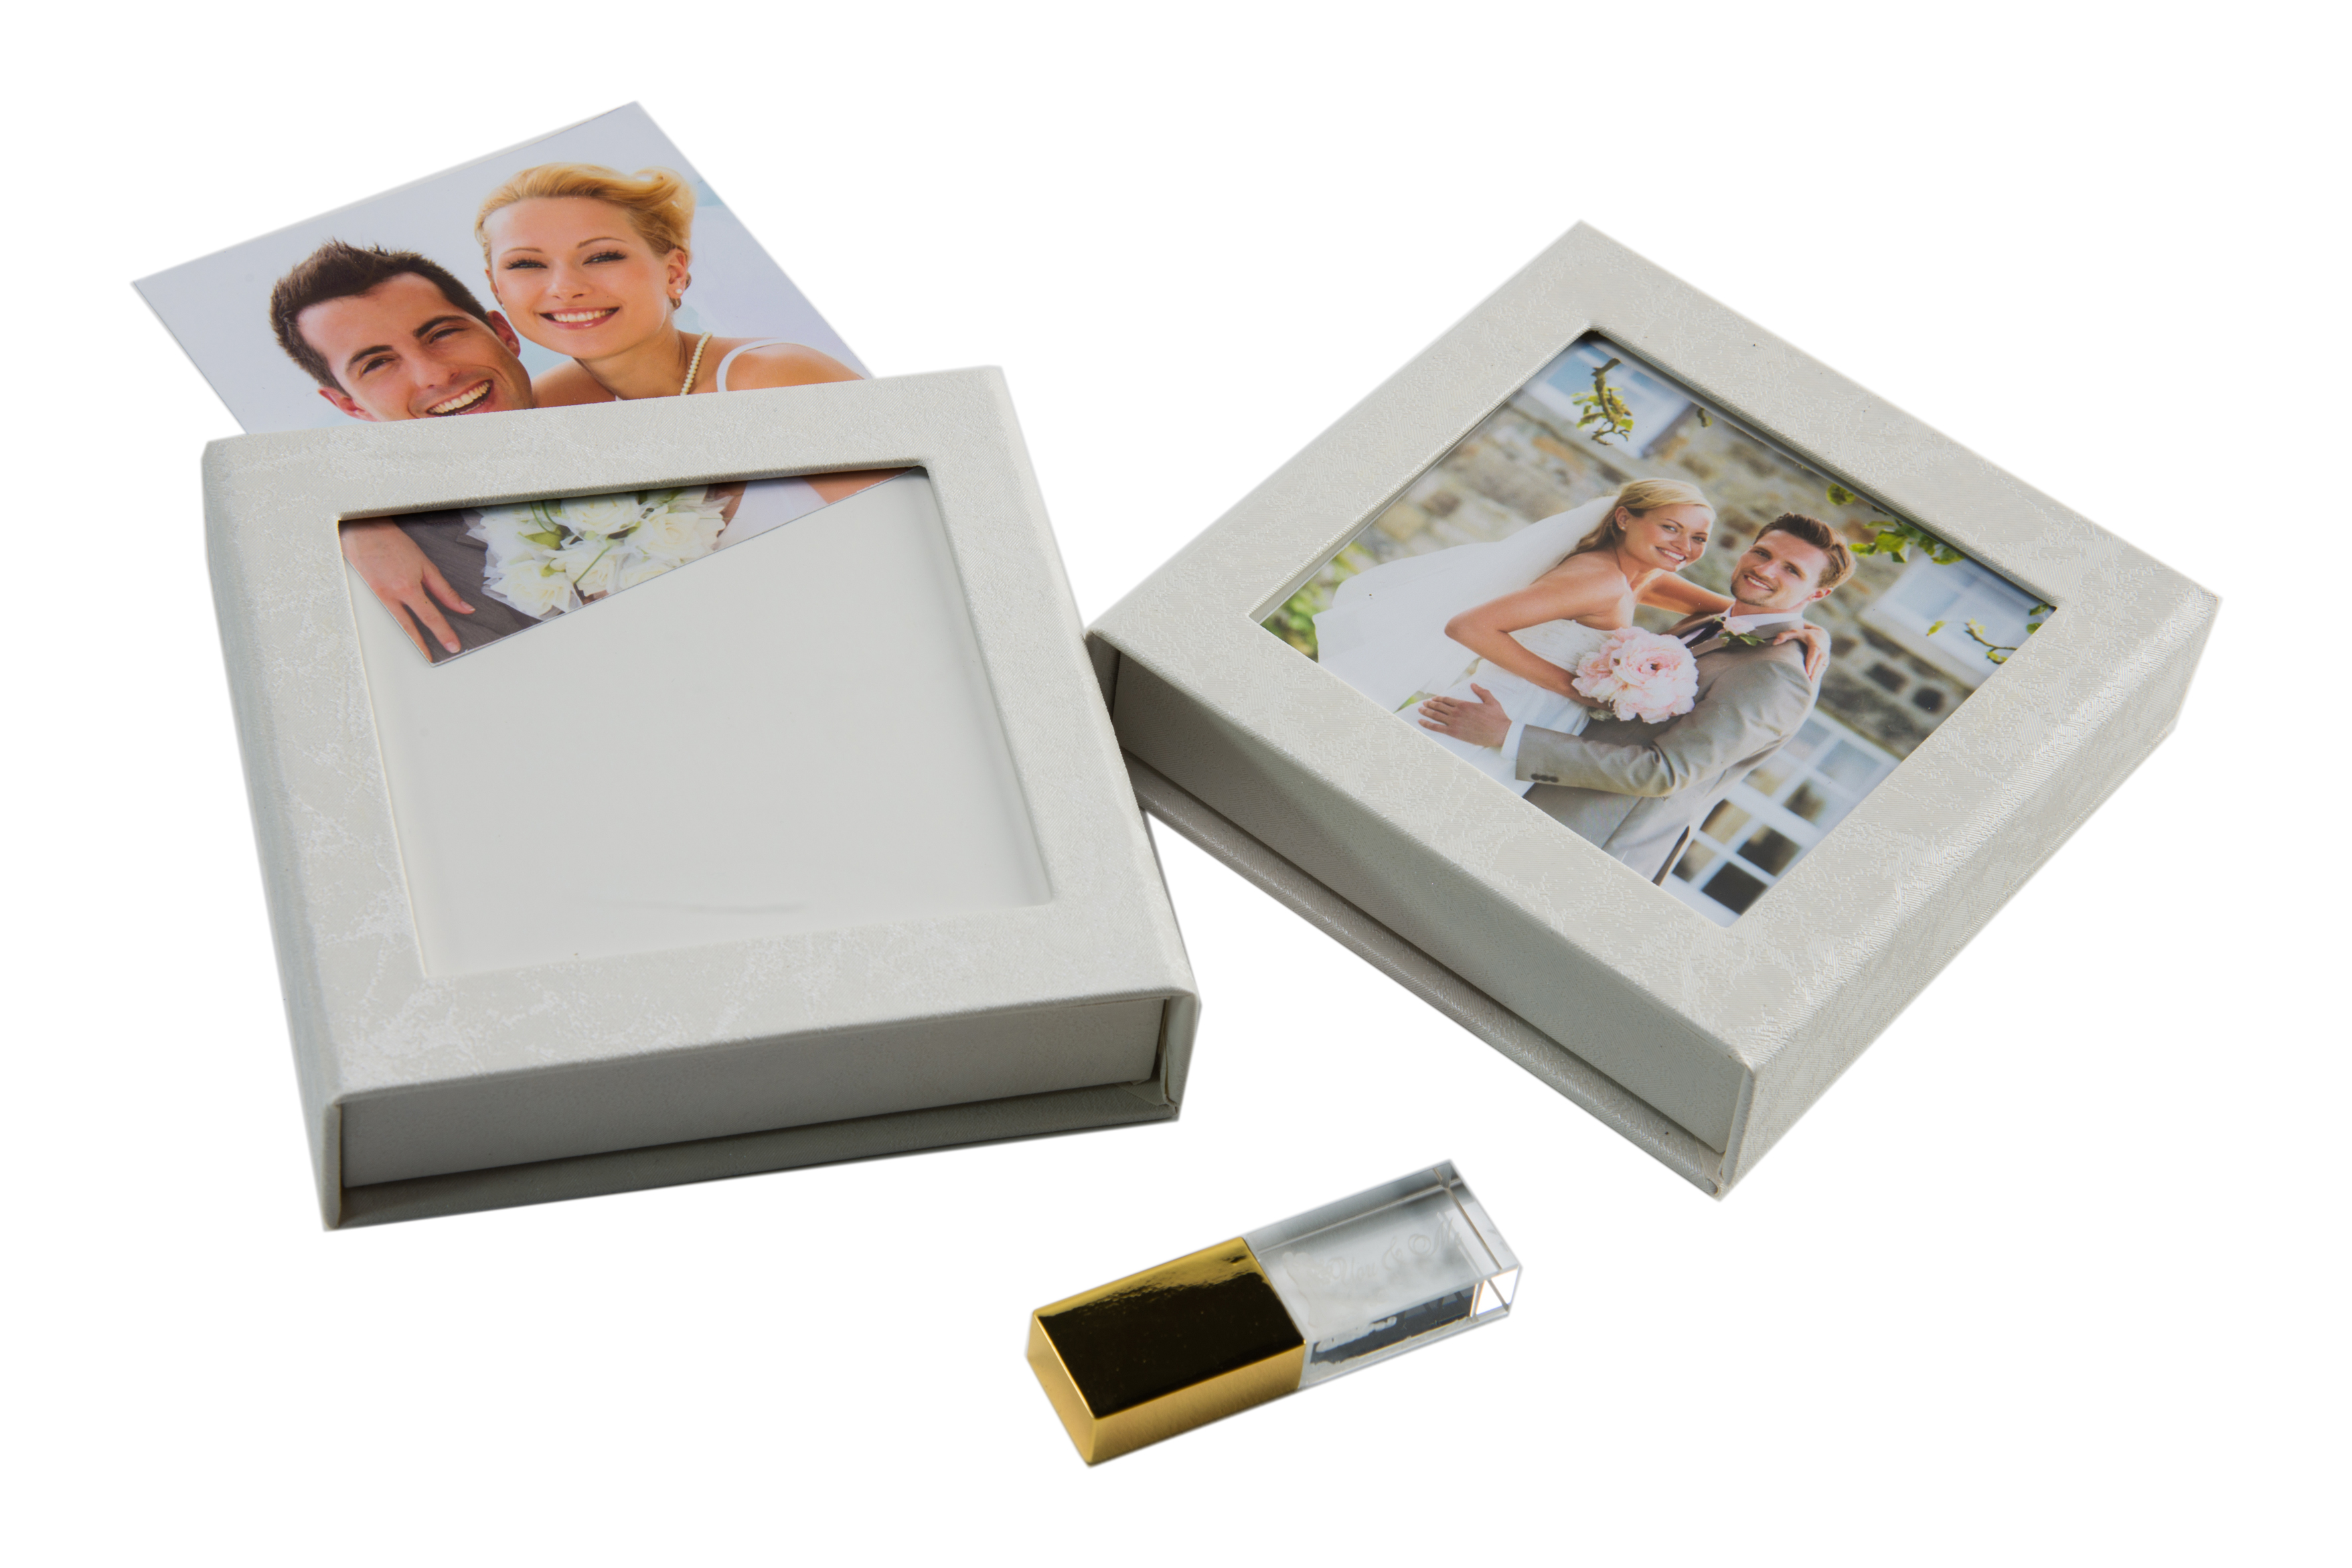 hochzeit usb stick kristal mit usb box hochzeit dvd cd usb blue ray h lle leder case box. Black Bedroom Furniture Sets. Home Design Ideas